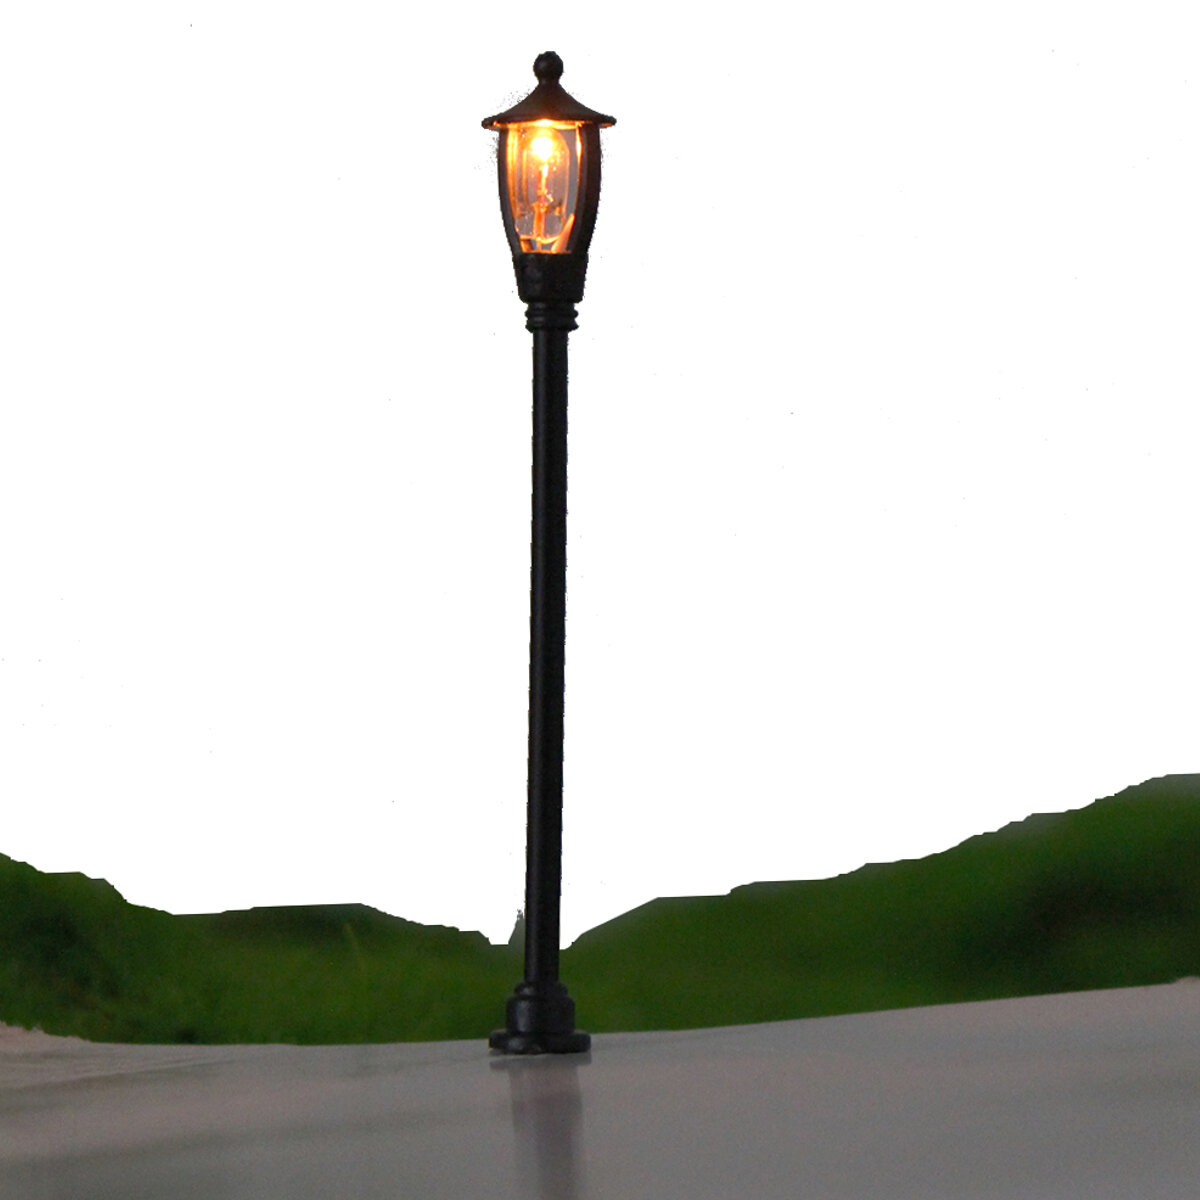 Garden Lamp 3d Model: 20pcs/set 1:100 Scale Single Head Garden Park Street Light